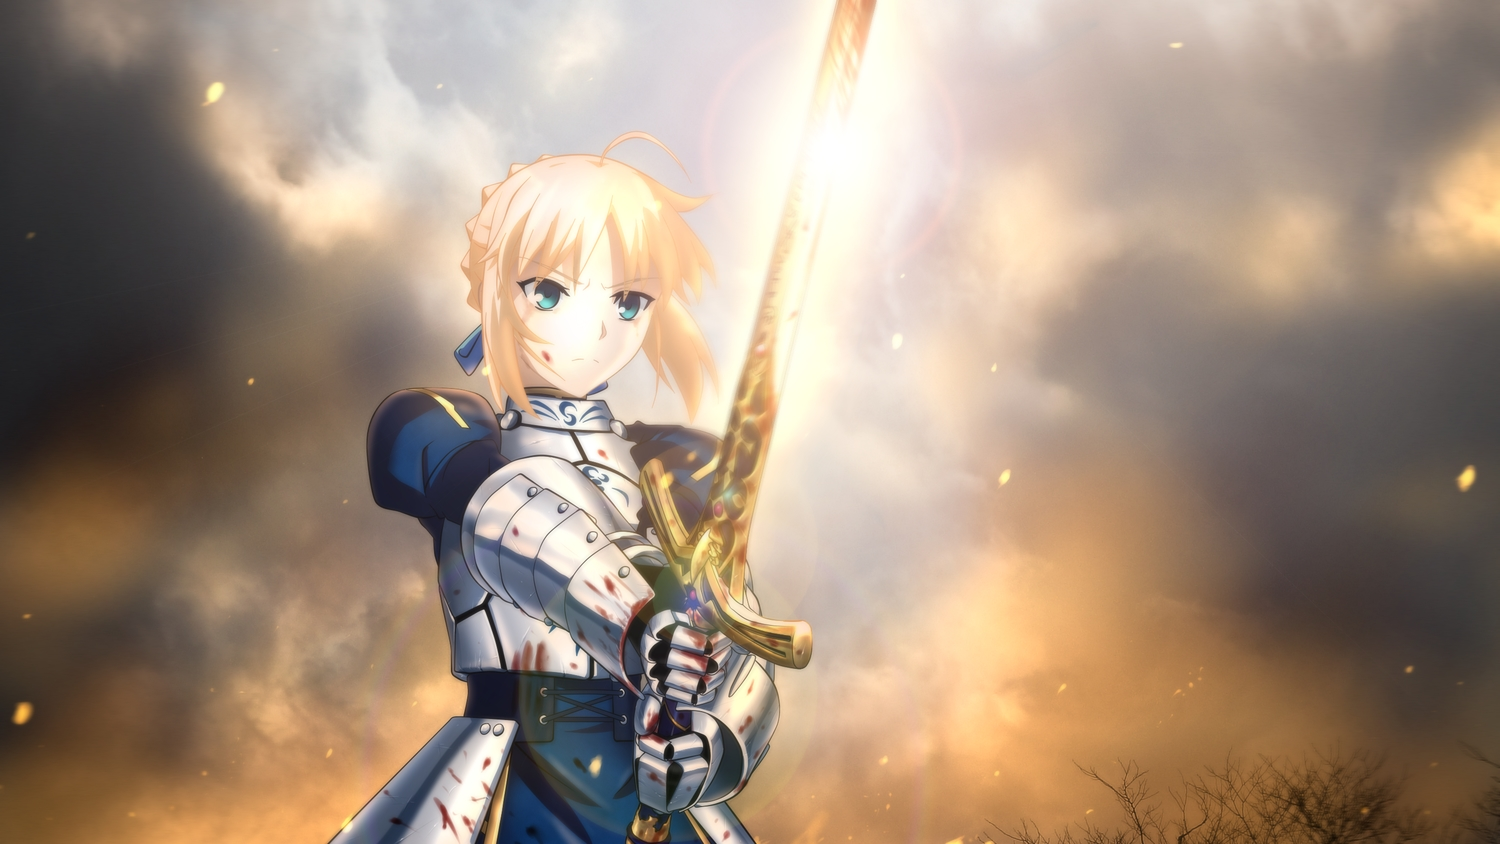 artoria_pendragon_(all) blonde_hair blood blue_eyes fate_(series) fate/stay_night genya67 saber short_hair sword weapon